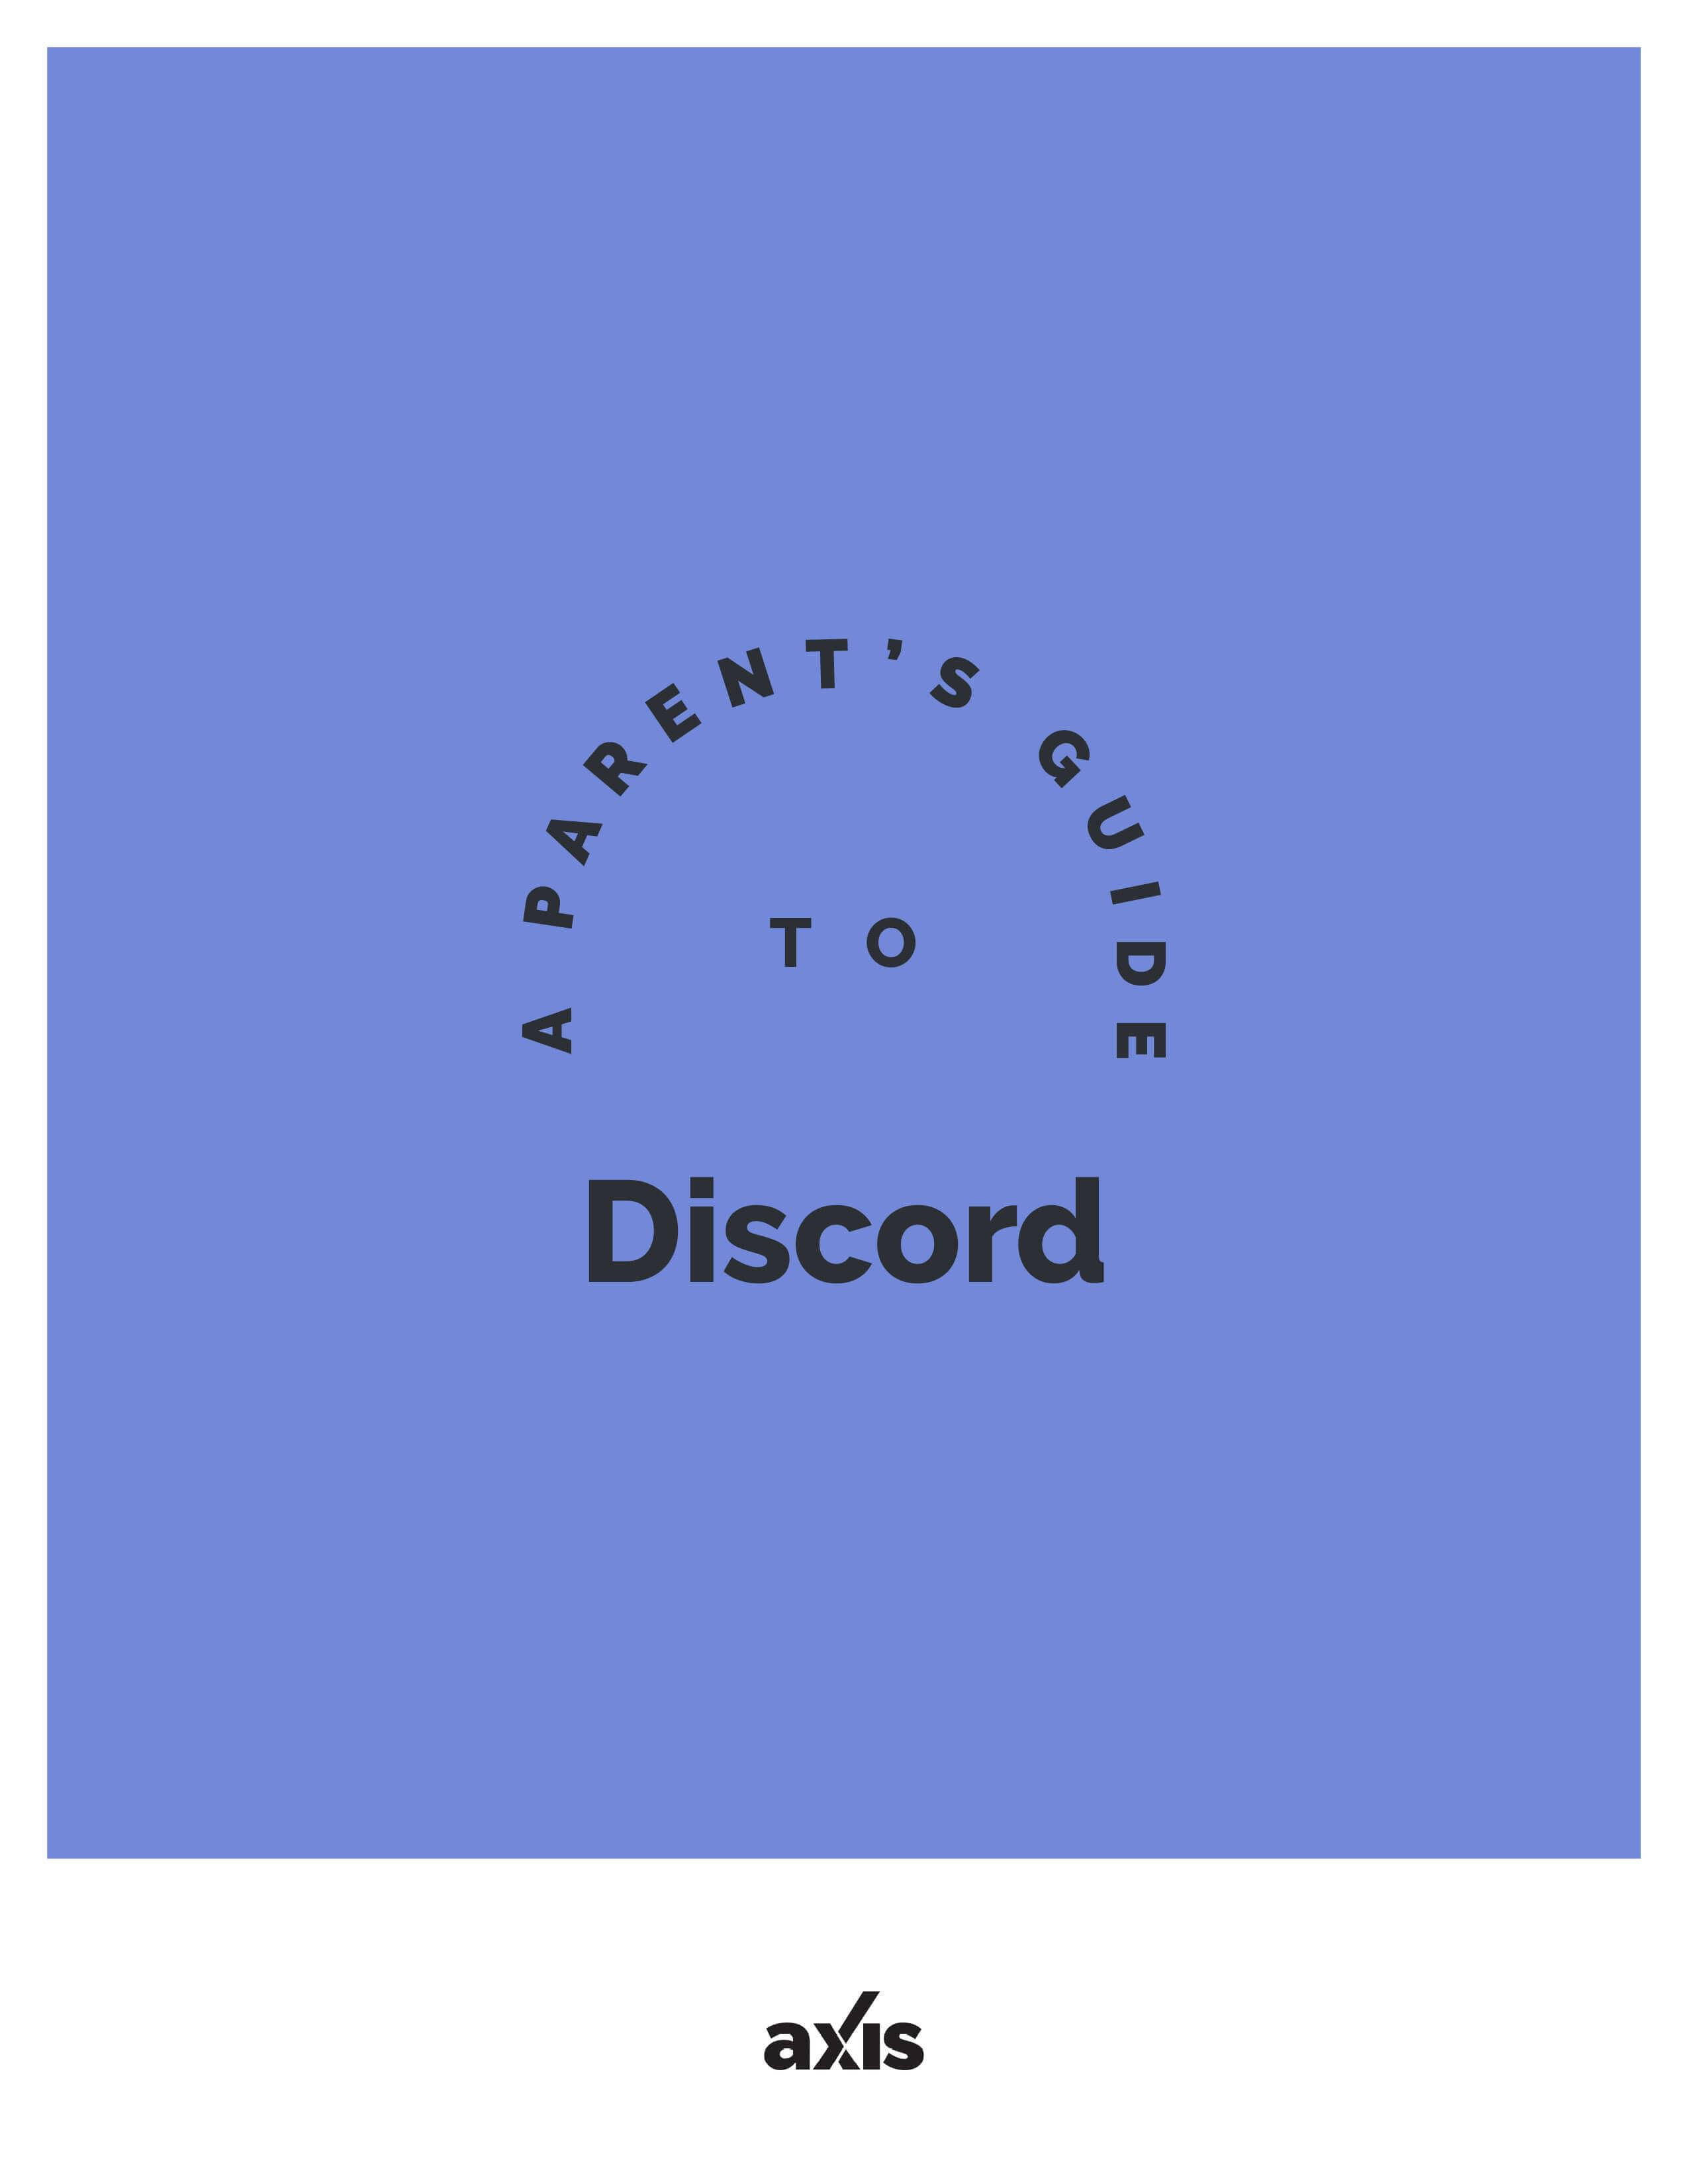 A Parent's Guide to Discord